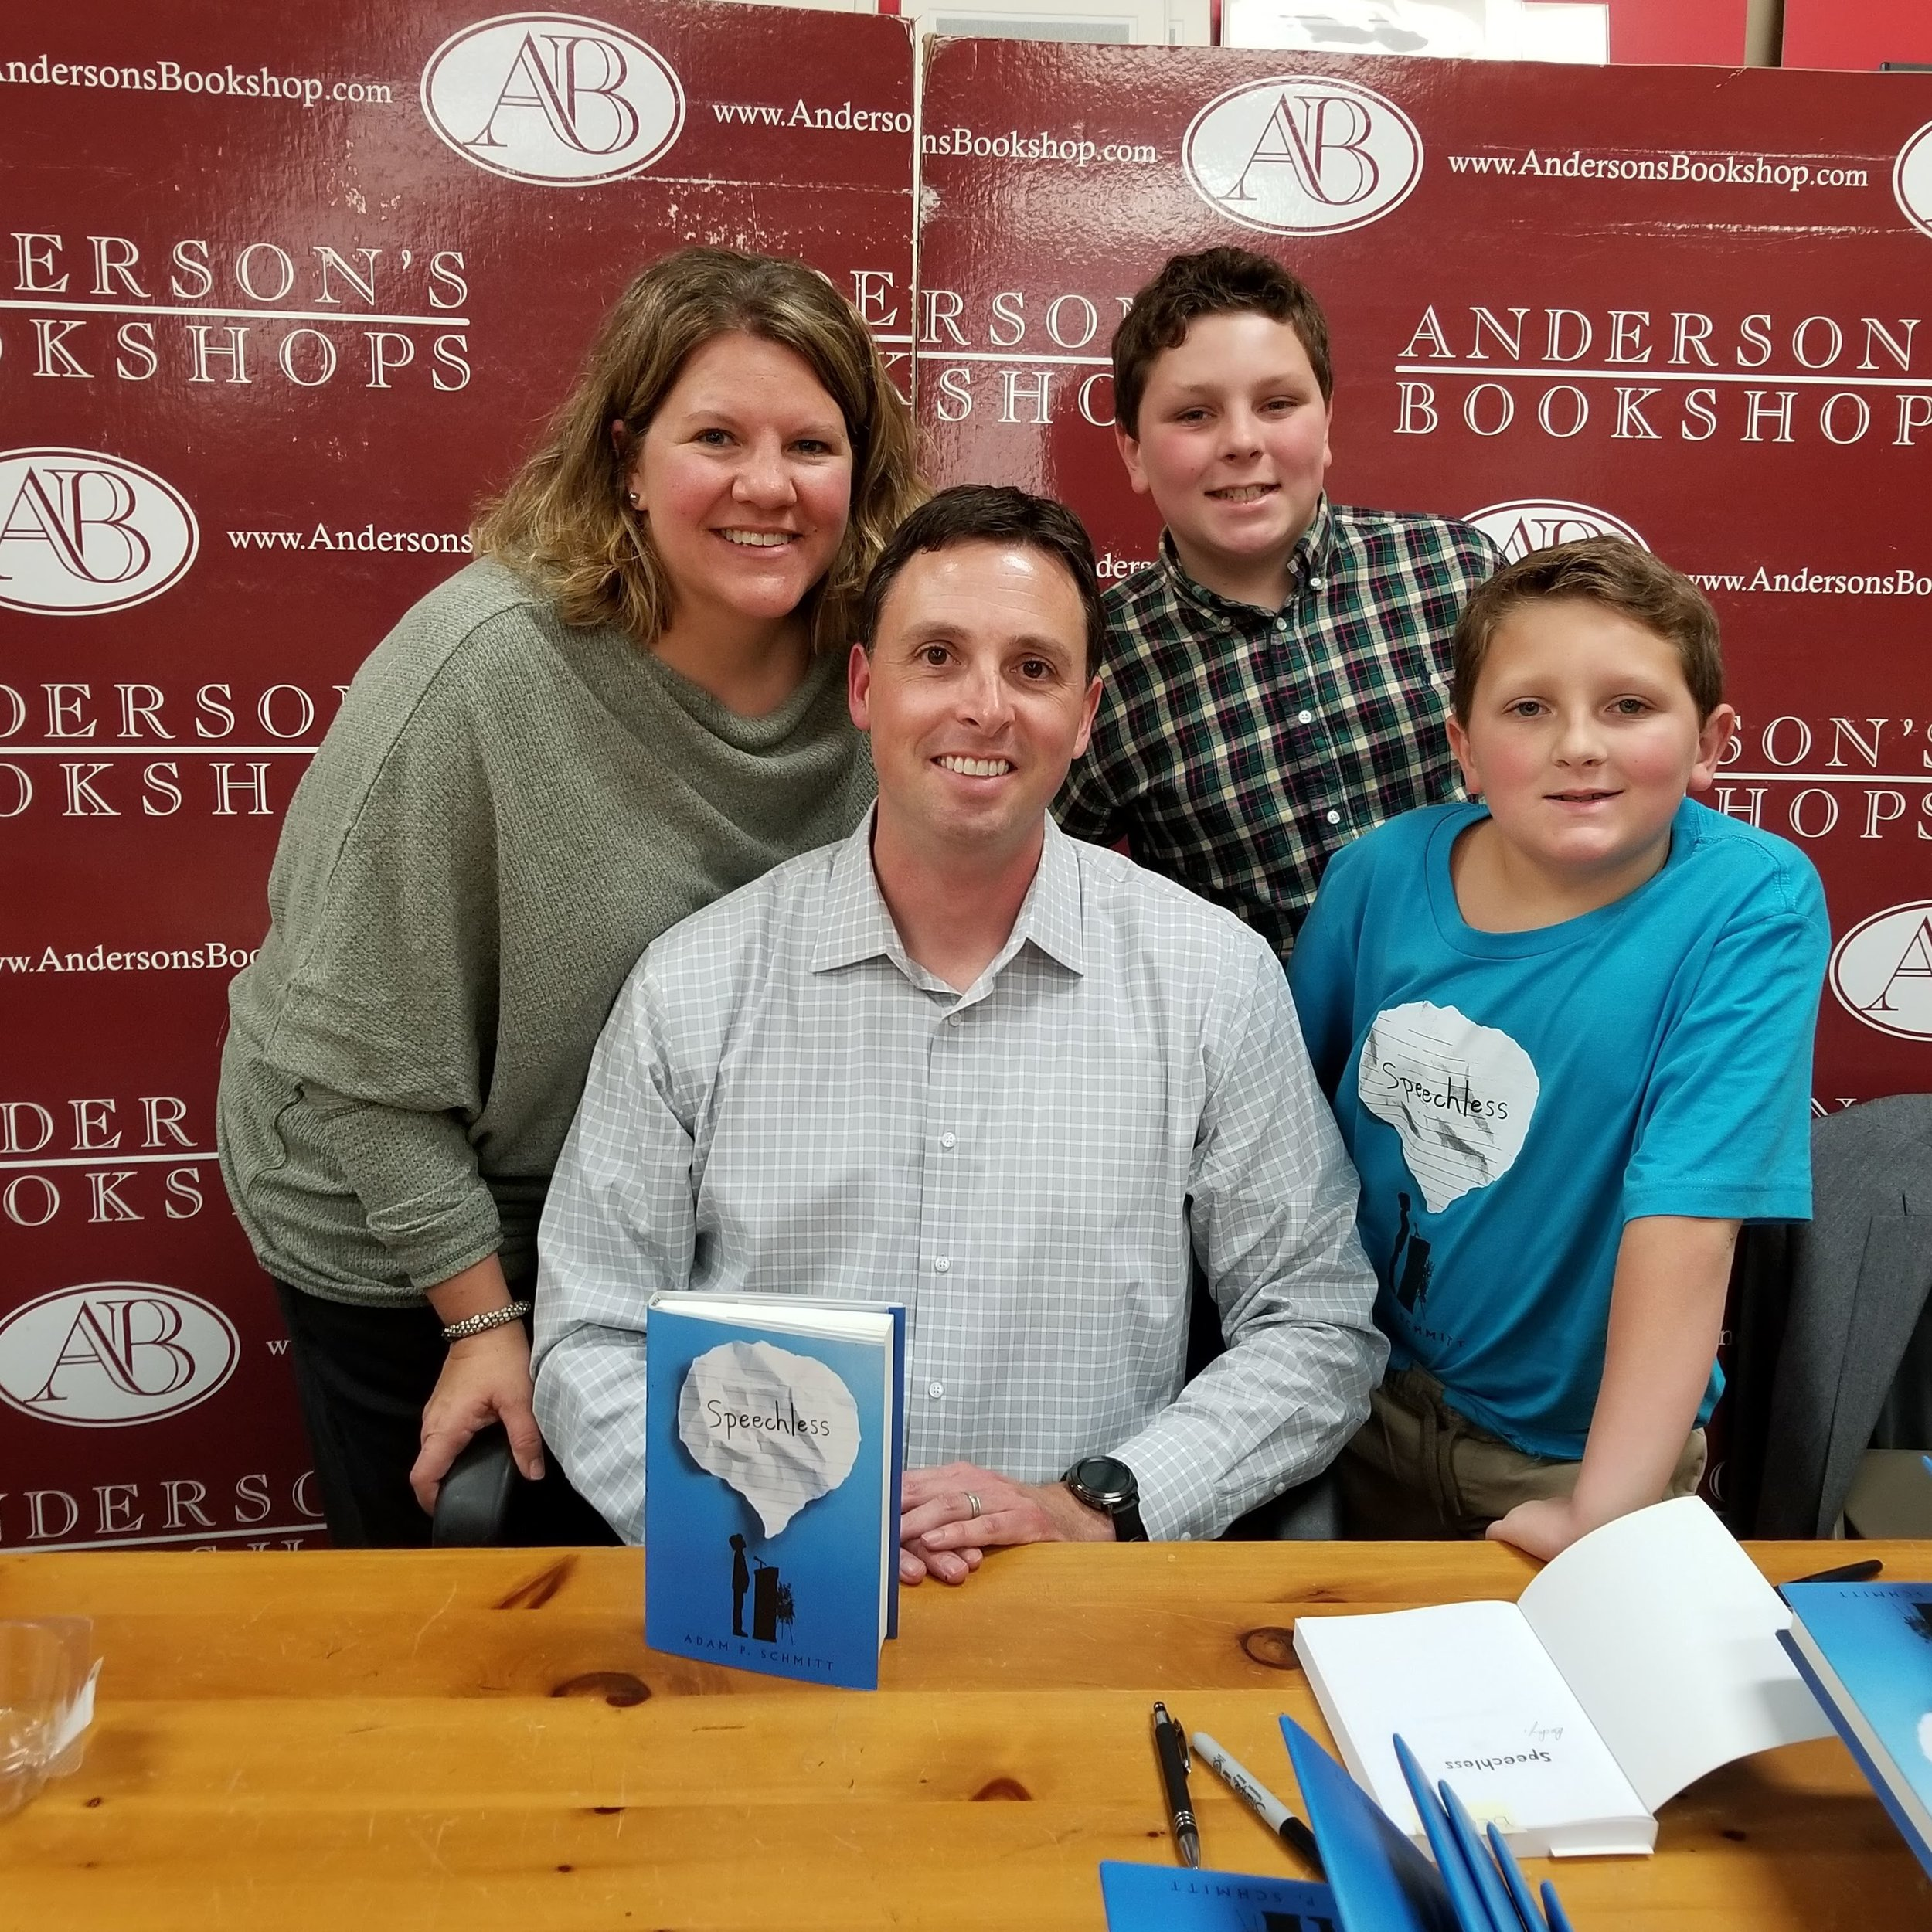 My fantastic family the Anderson's launch event!